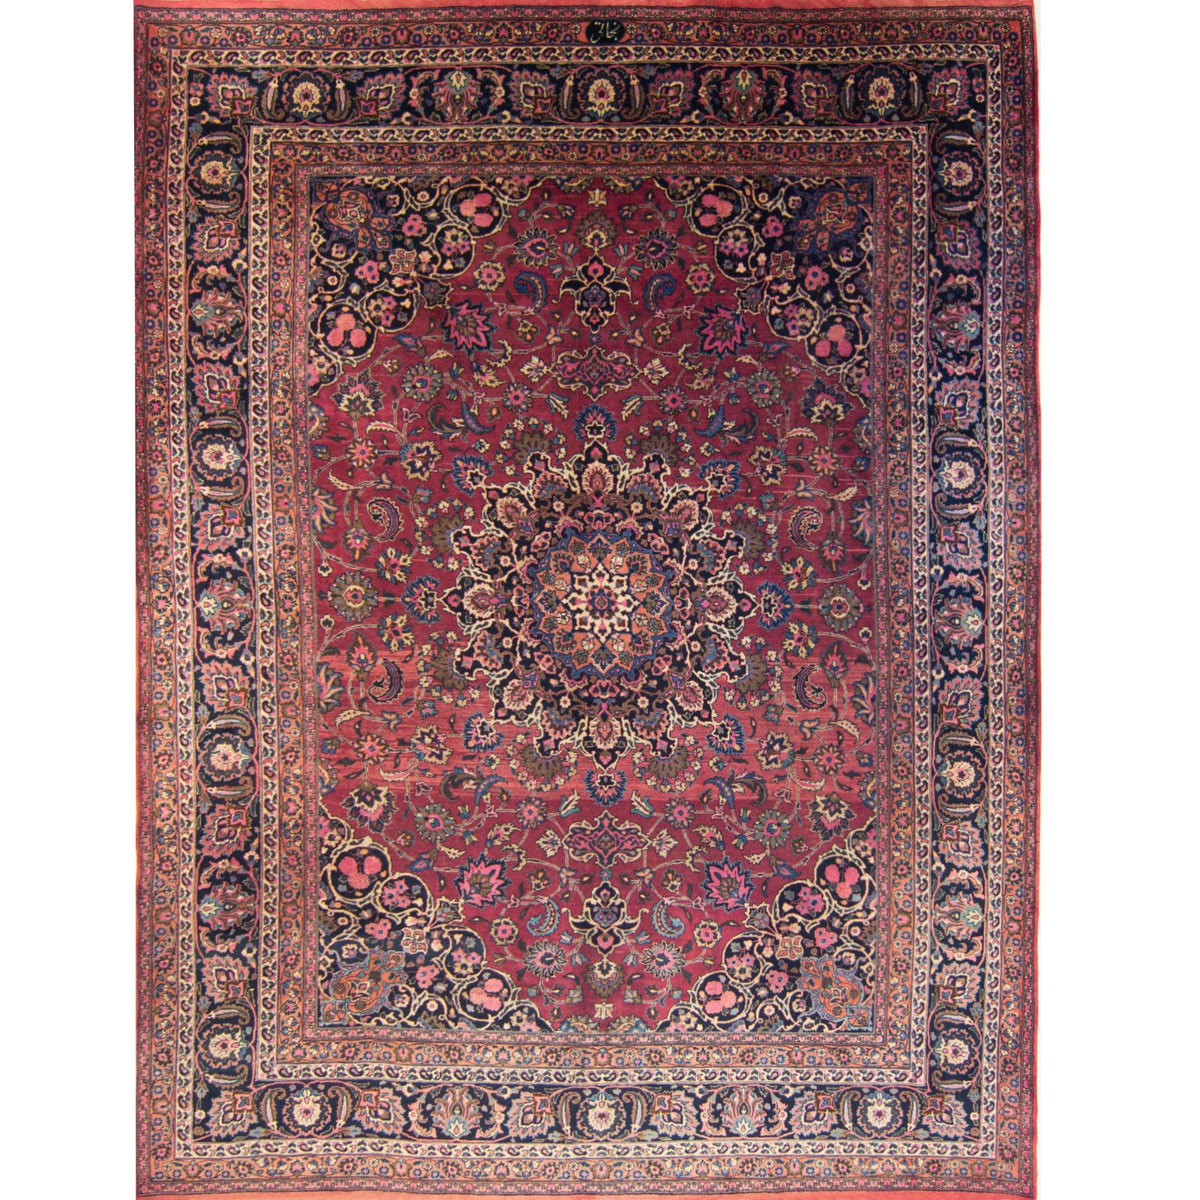 Semi Antique Hand-knotted Wool Persian Kashmar Rug 304cm x 398cm (SIGNED) Persian-Rug | House-of-Haghi | NewMarket | Auckland | NZ | Handmade Persian Rugs | Hand Knotted Persian Rugs